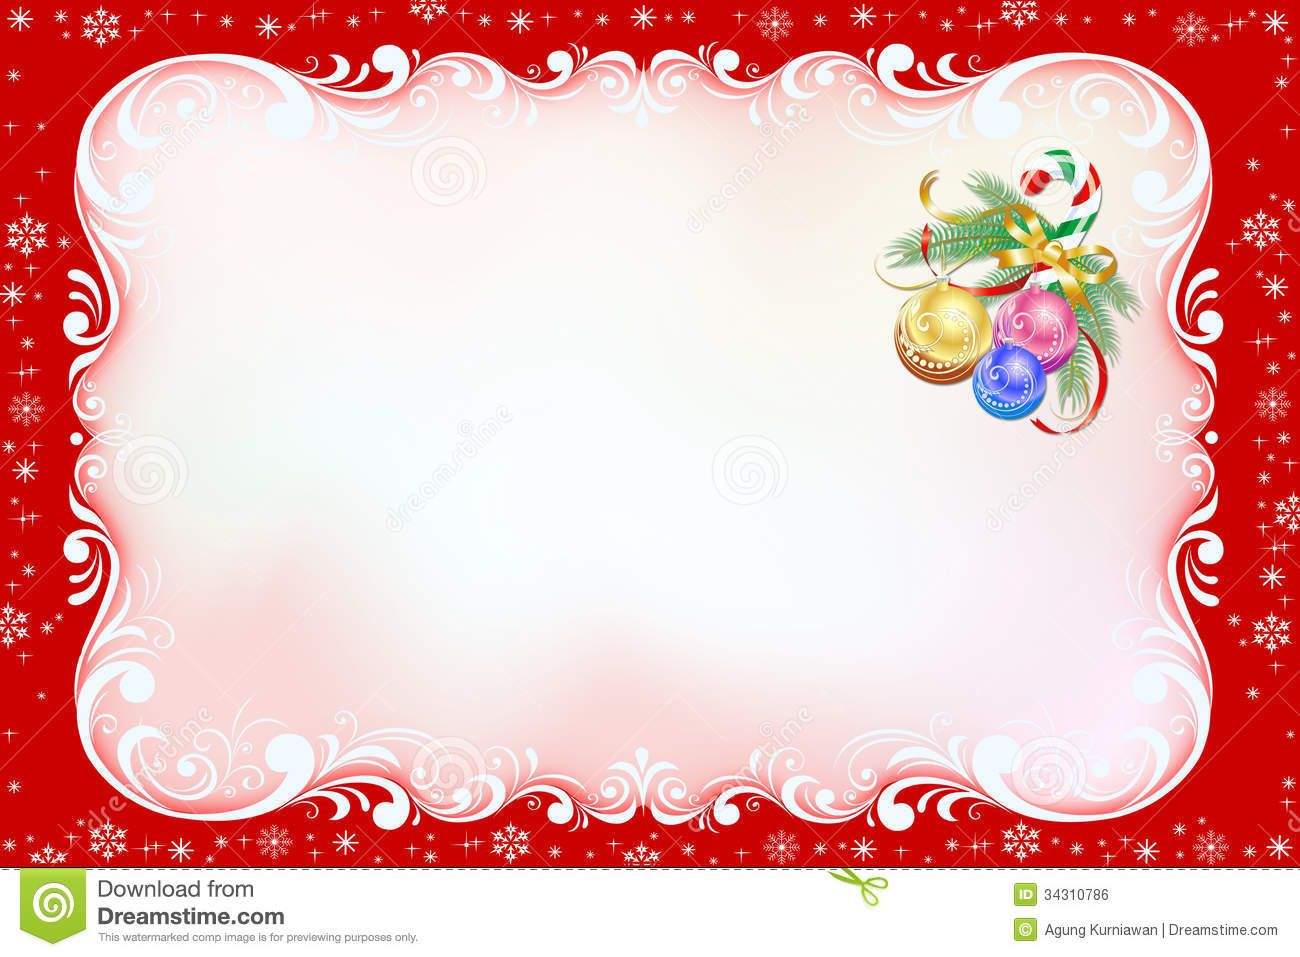 2012 Christmas card templates vector Set of 4 beautiful new 2012 – Christmas Birthday Card